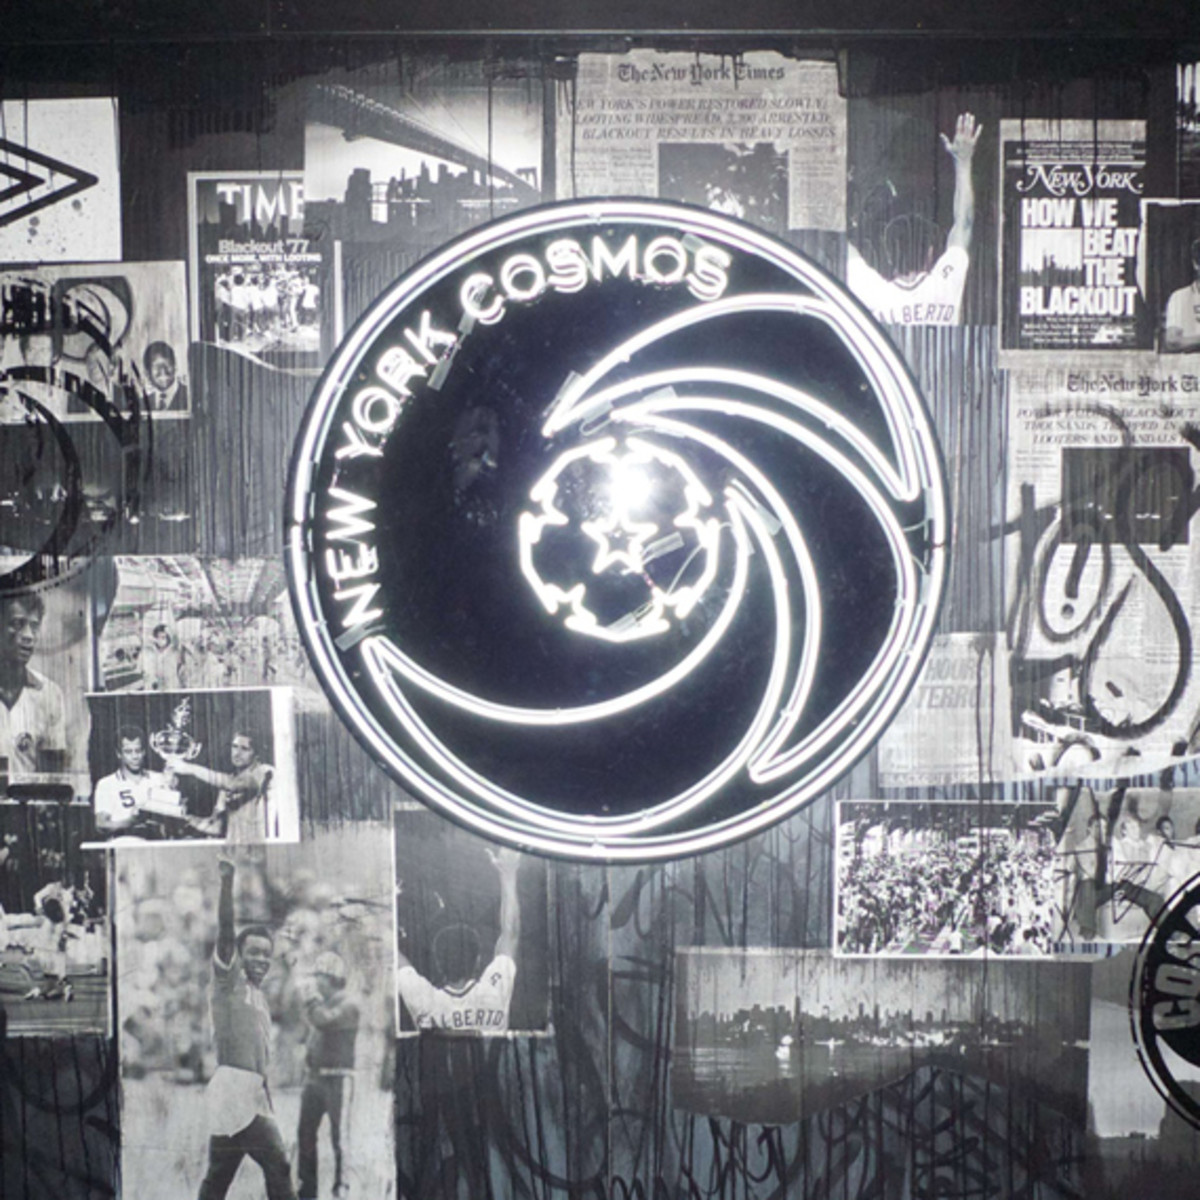 umbro-new-york-cosmos-blackout-launch-reed-space-03